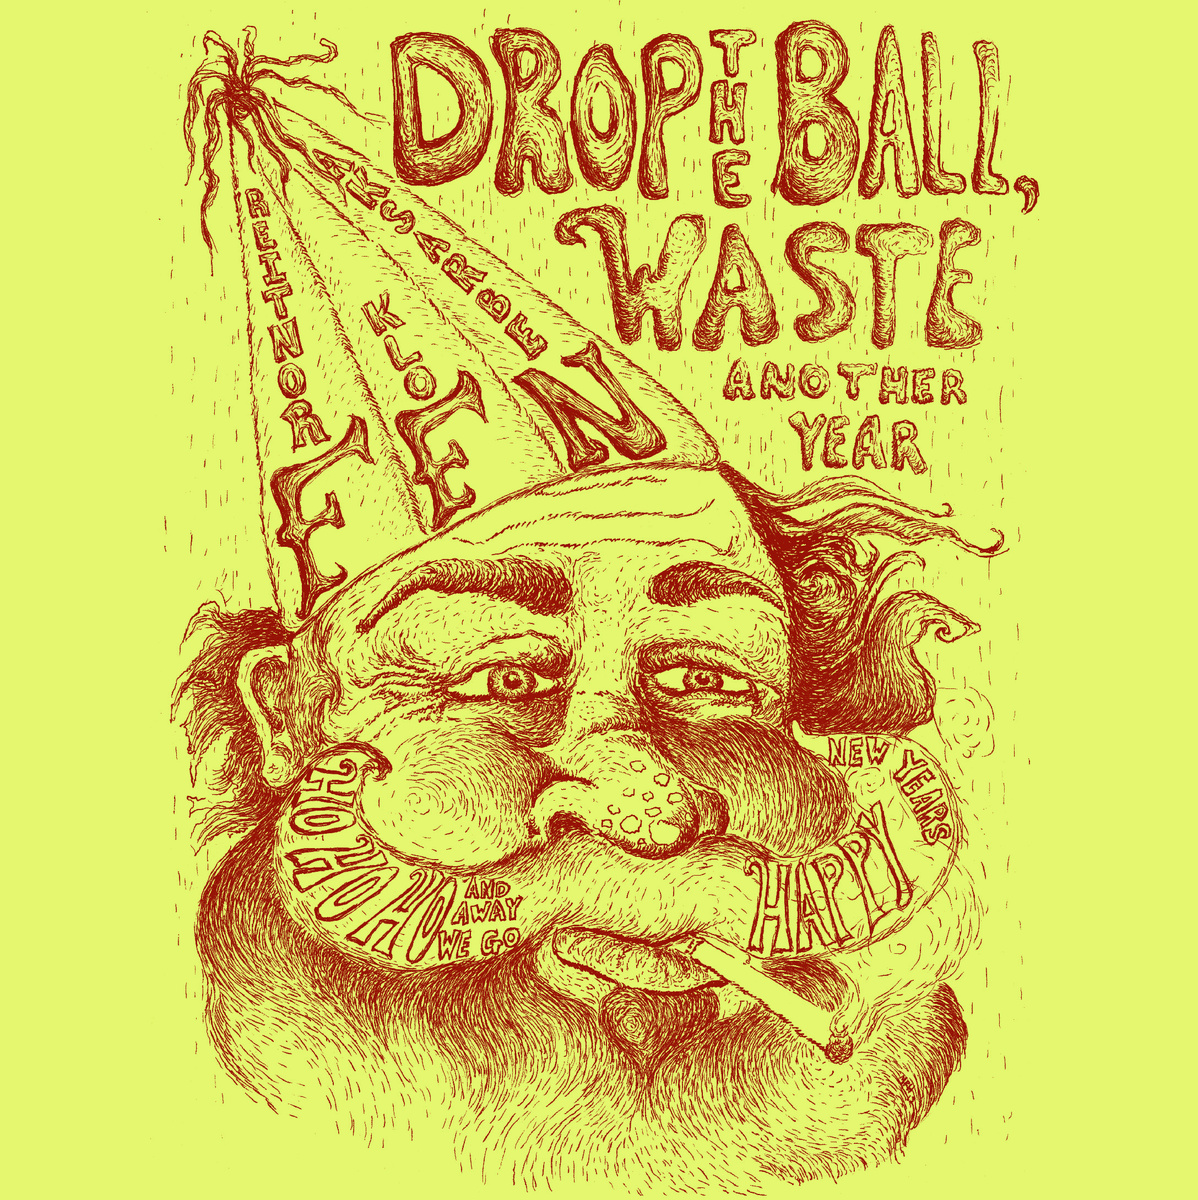 Frontier Folk Nebraska - Drop the Ball, Waste Another Year 7""